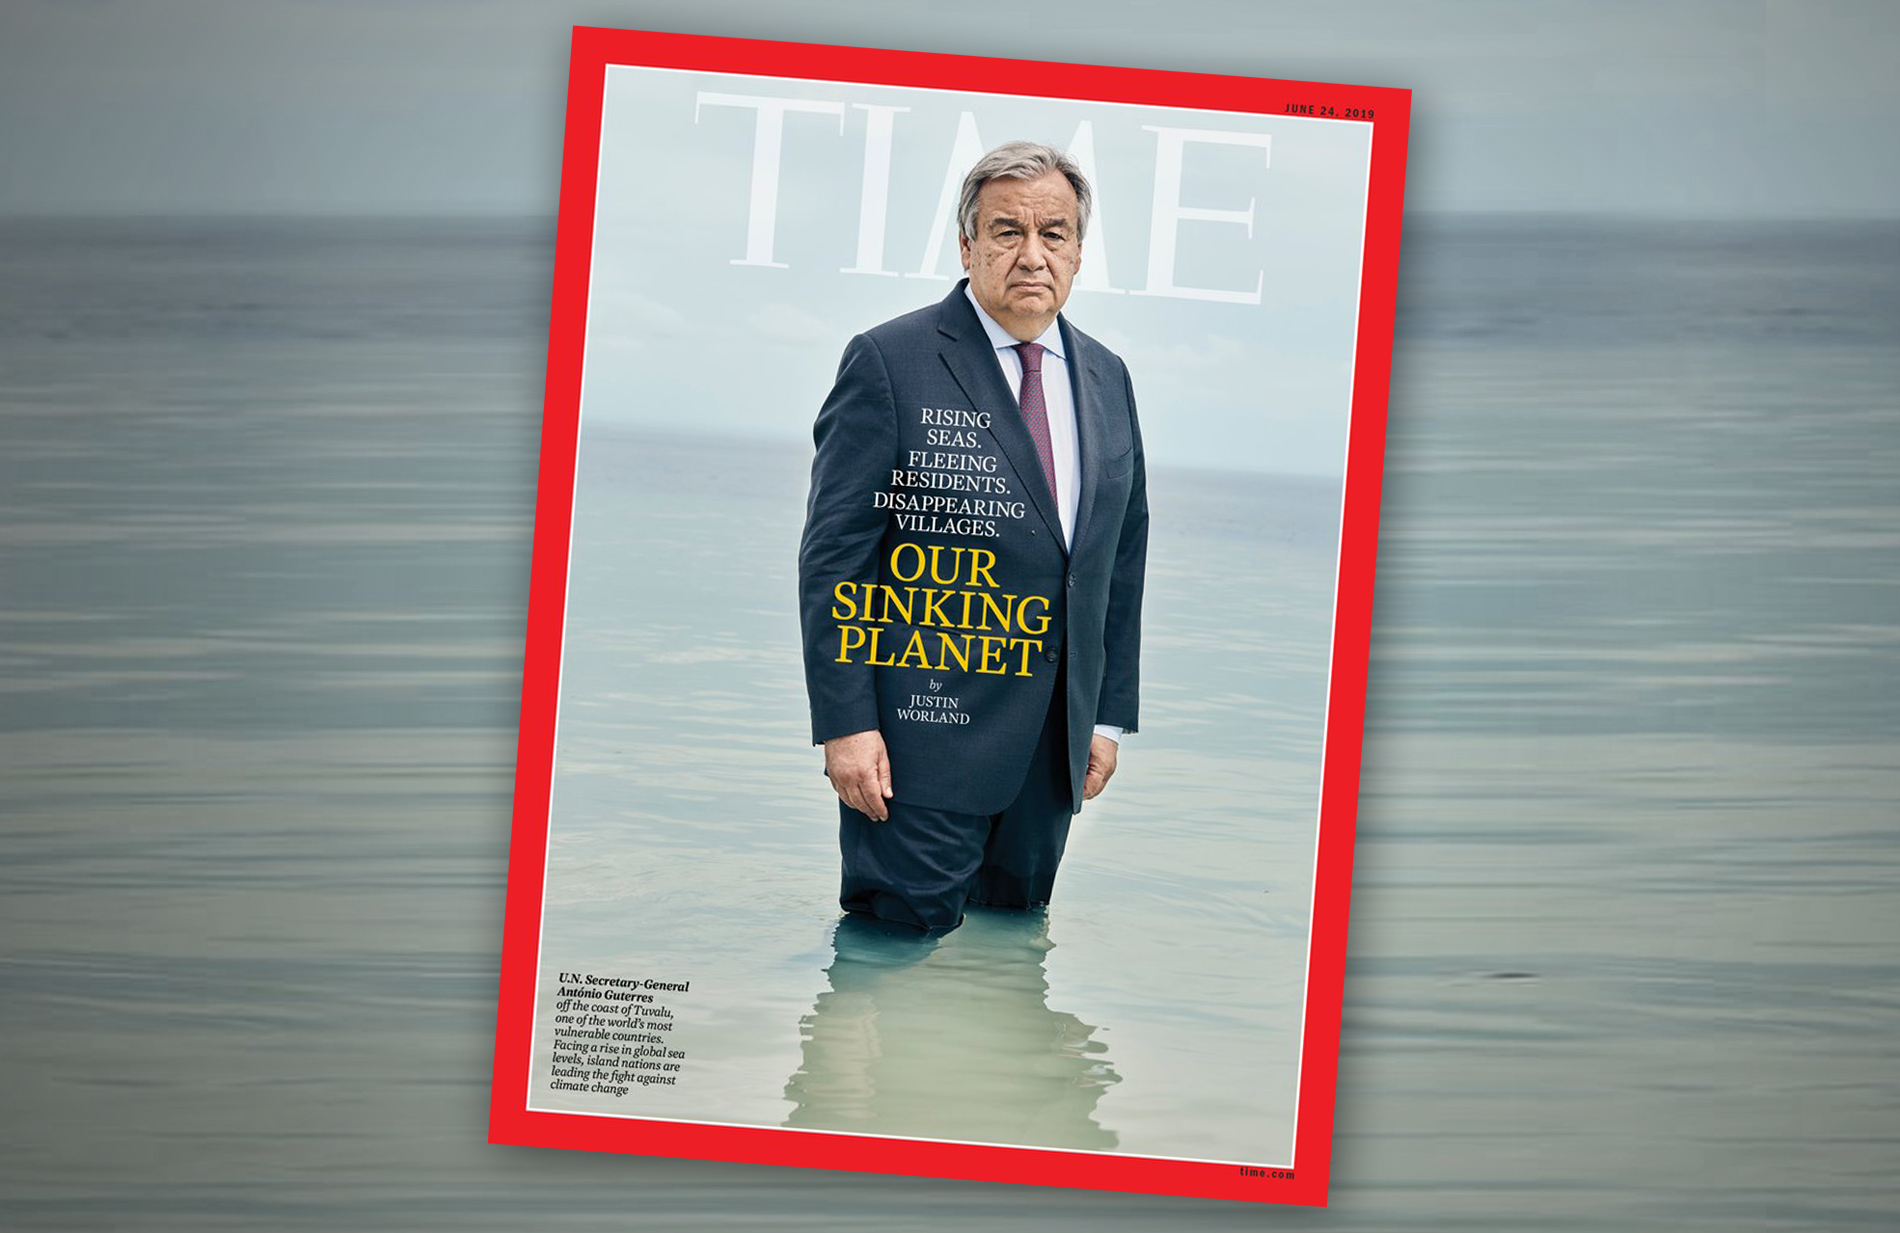 Hearst Mags beefs up video team, Time's déjà vu cover: Publisher's Brief